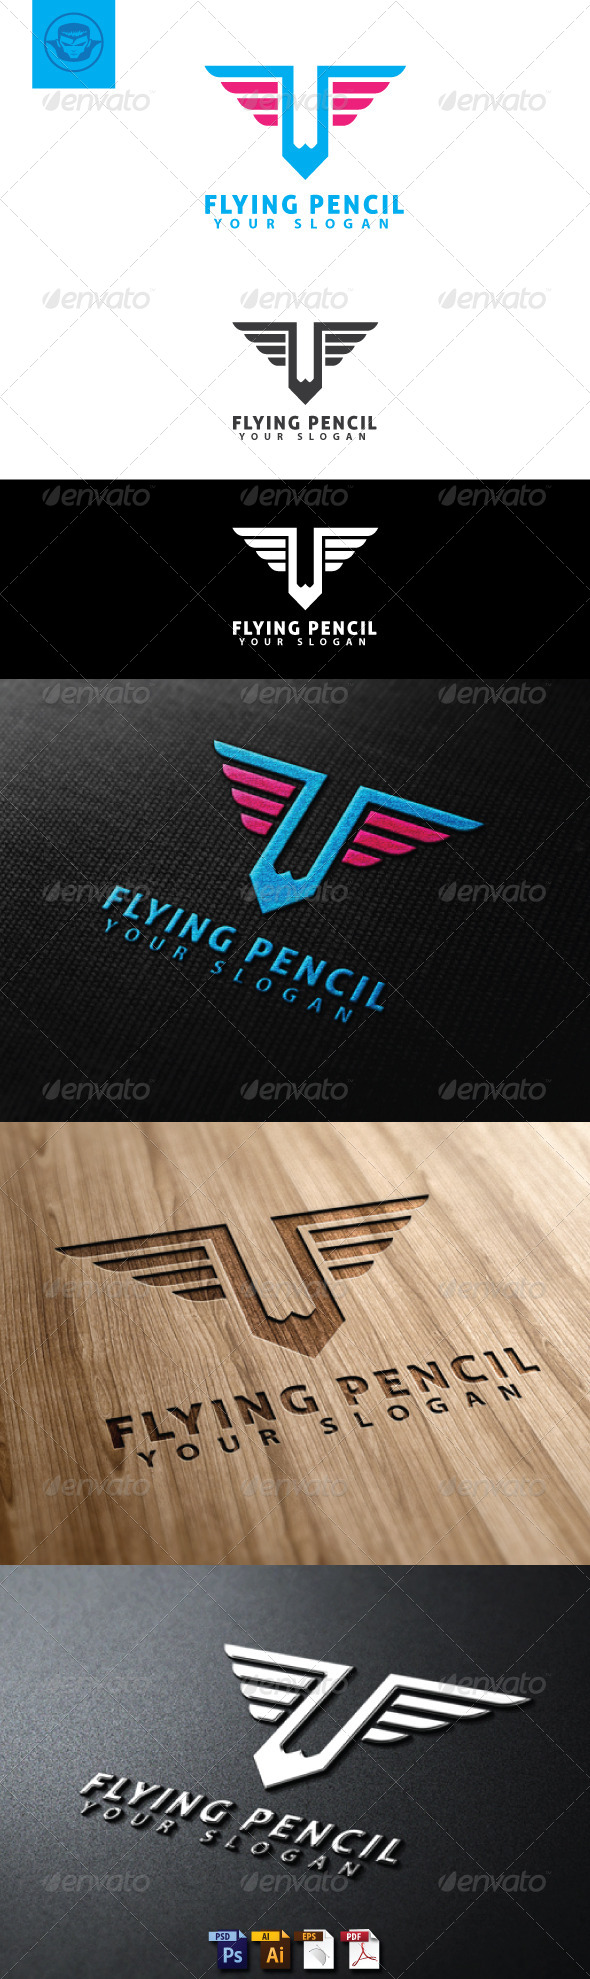 Flying Pencil Logo Template - Objects Logo Templates